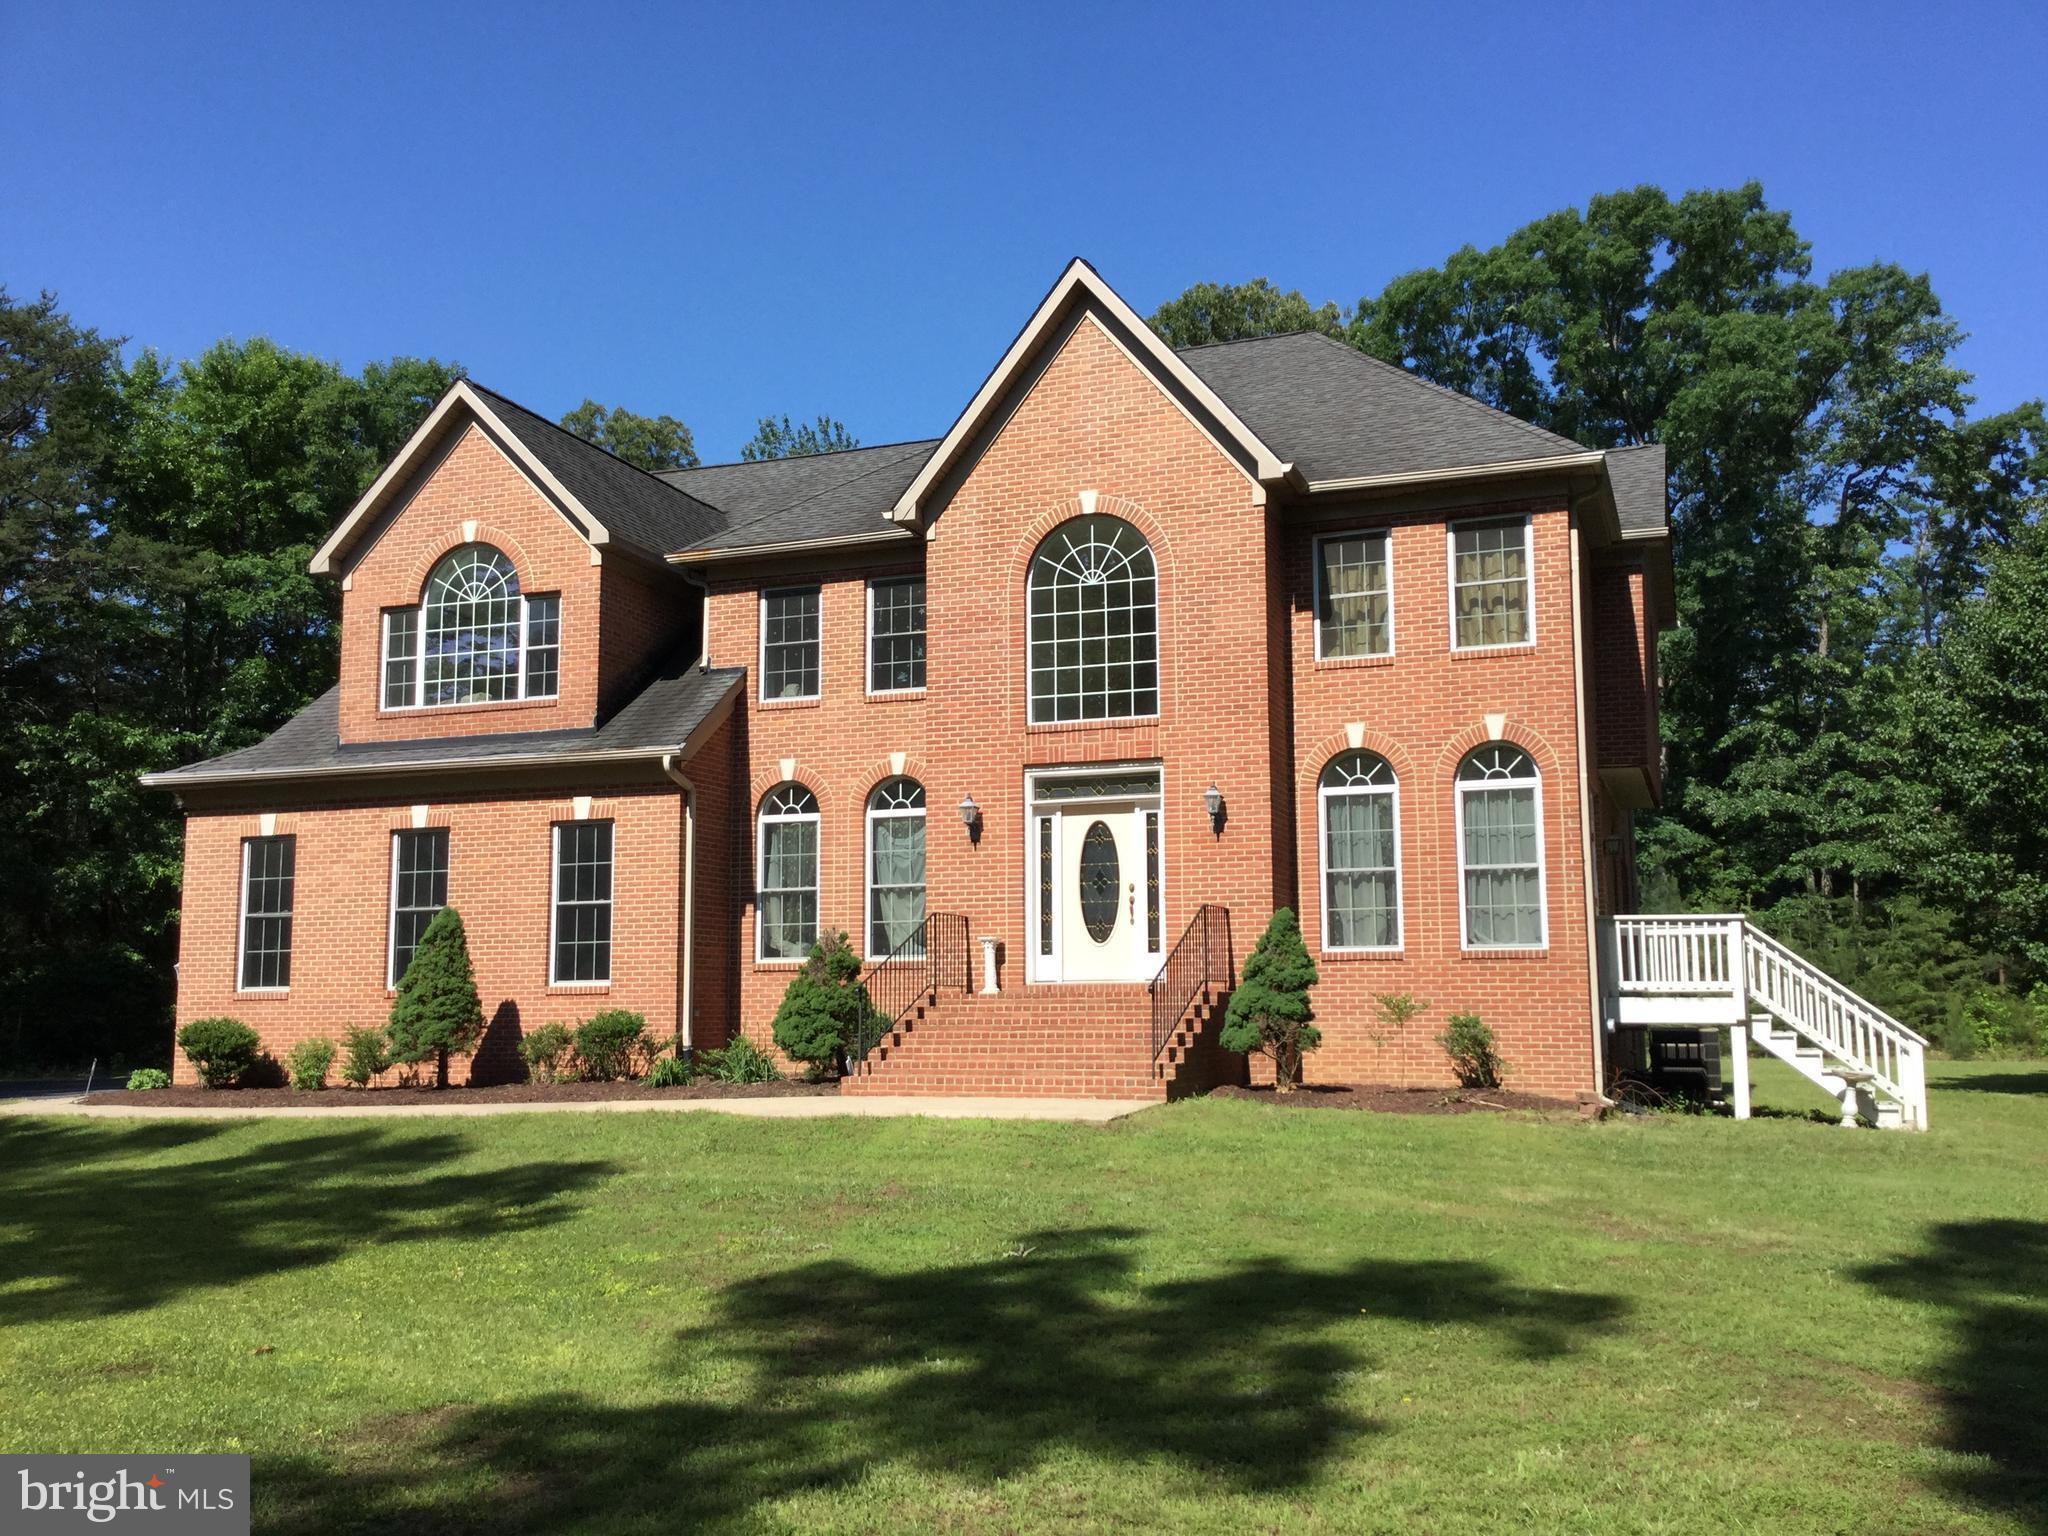 11865 BLUE POINT COURT, LUSBY, MD 20657